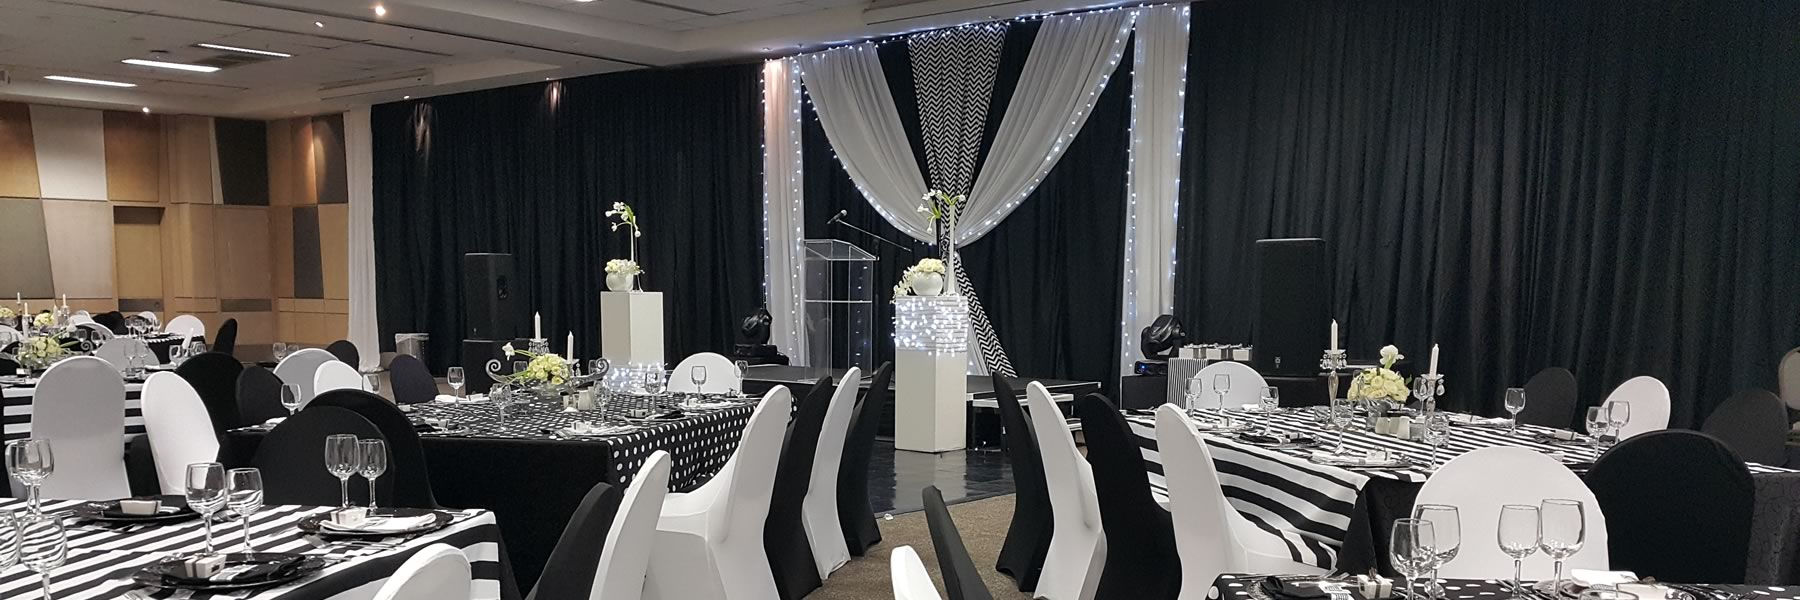 Ambrosia Wedding Events and Decor